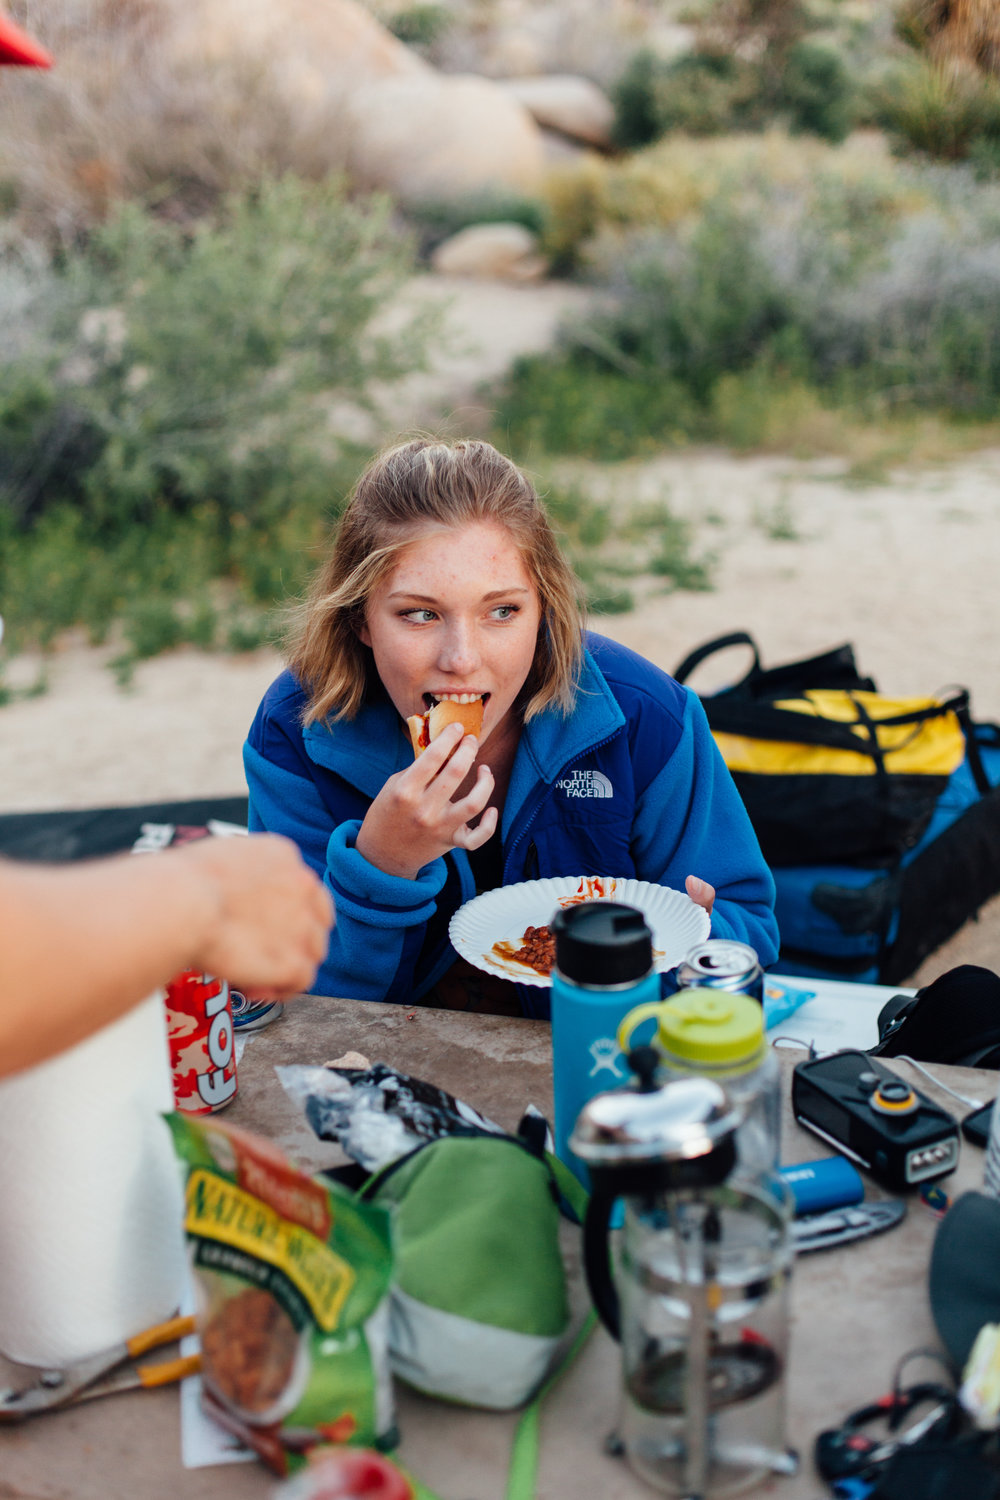 Bridget is a dedicated vegitarian as she can be seen here eating a bean hot dog (I know, freaked me out too)